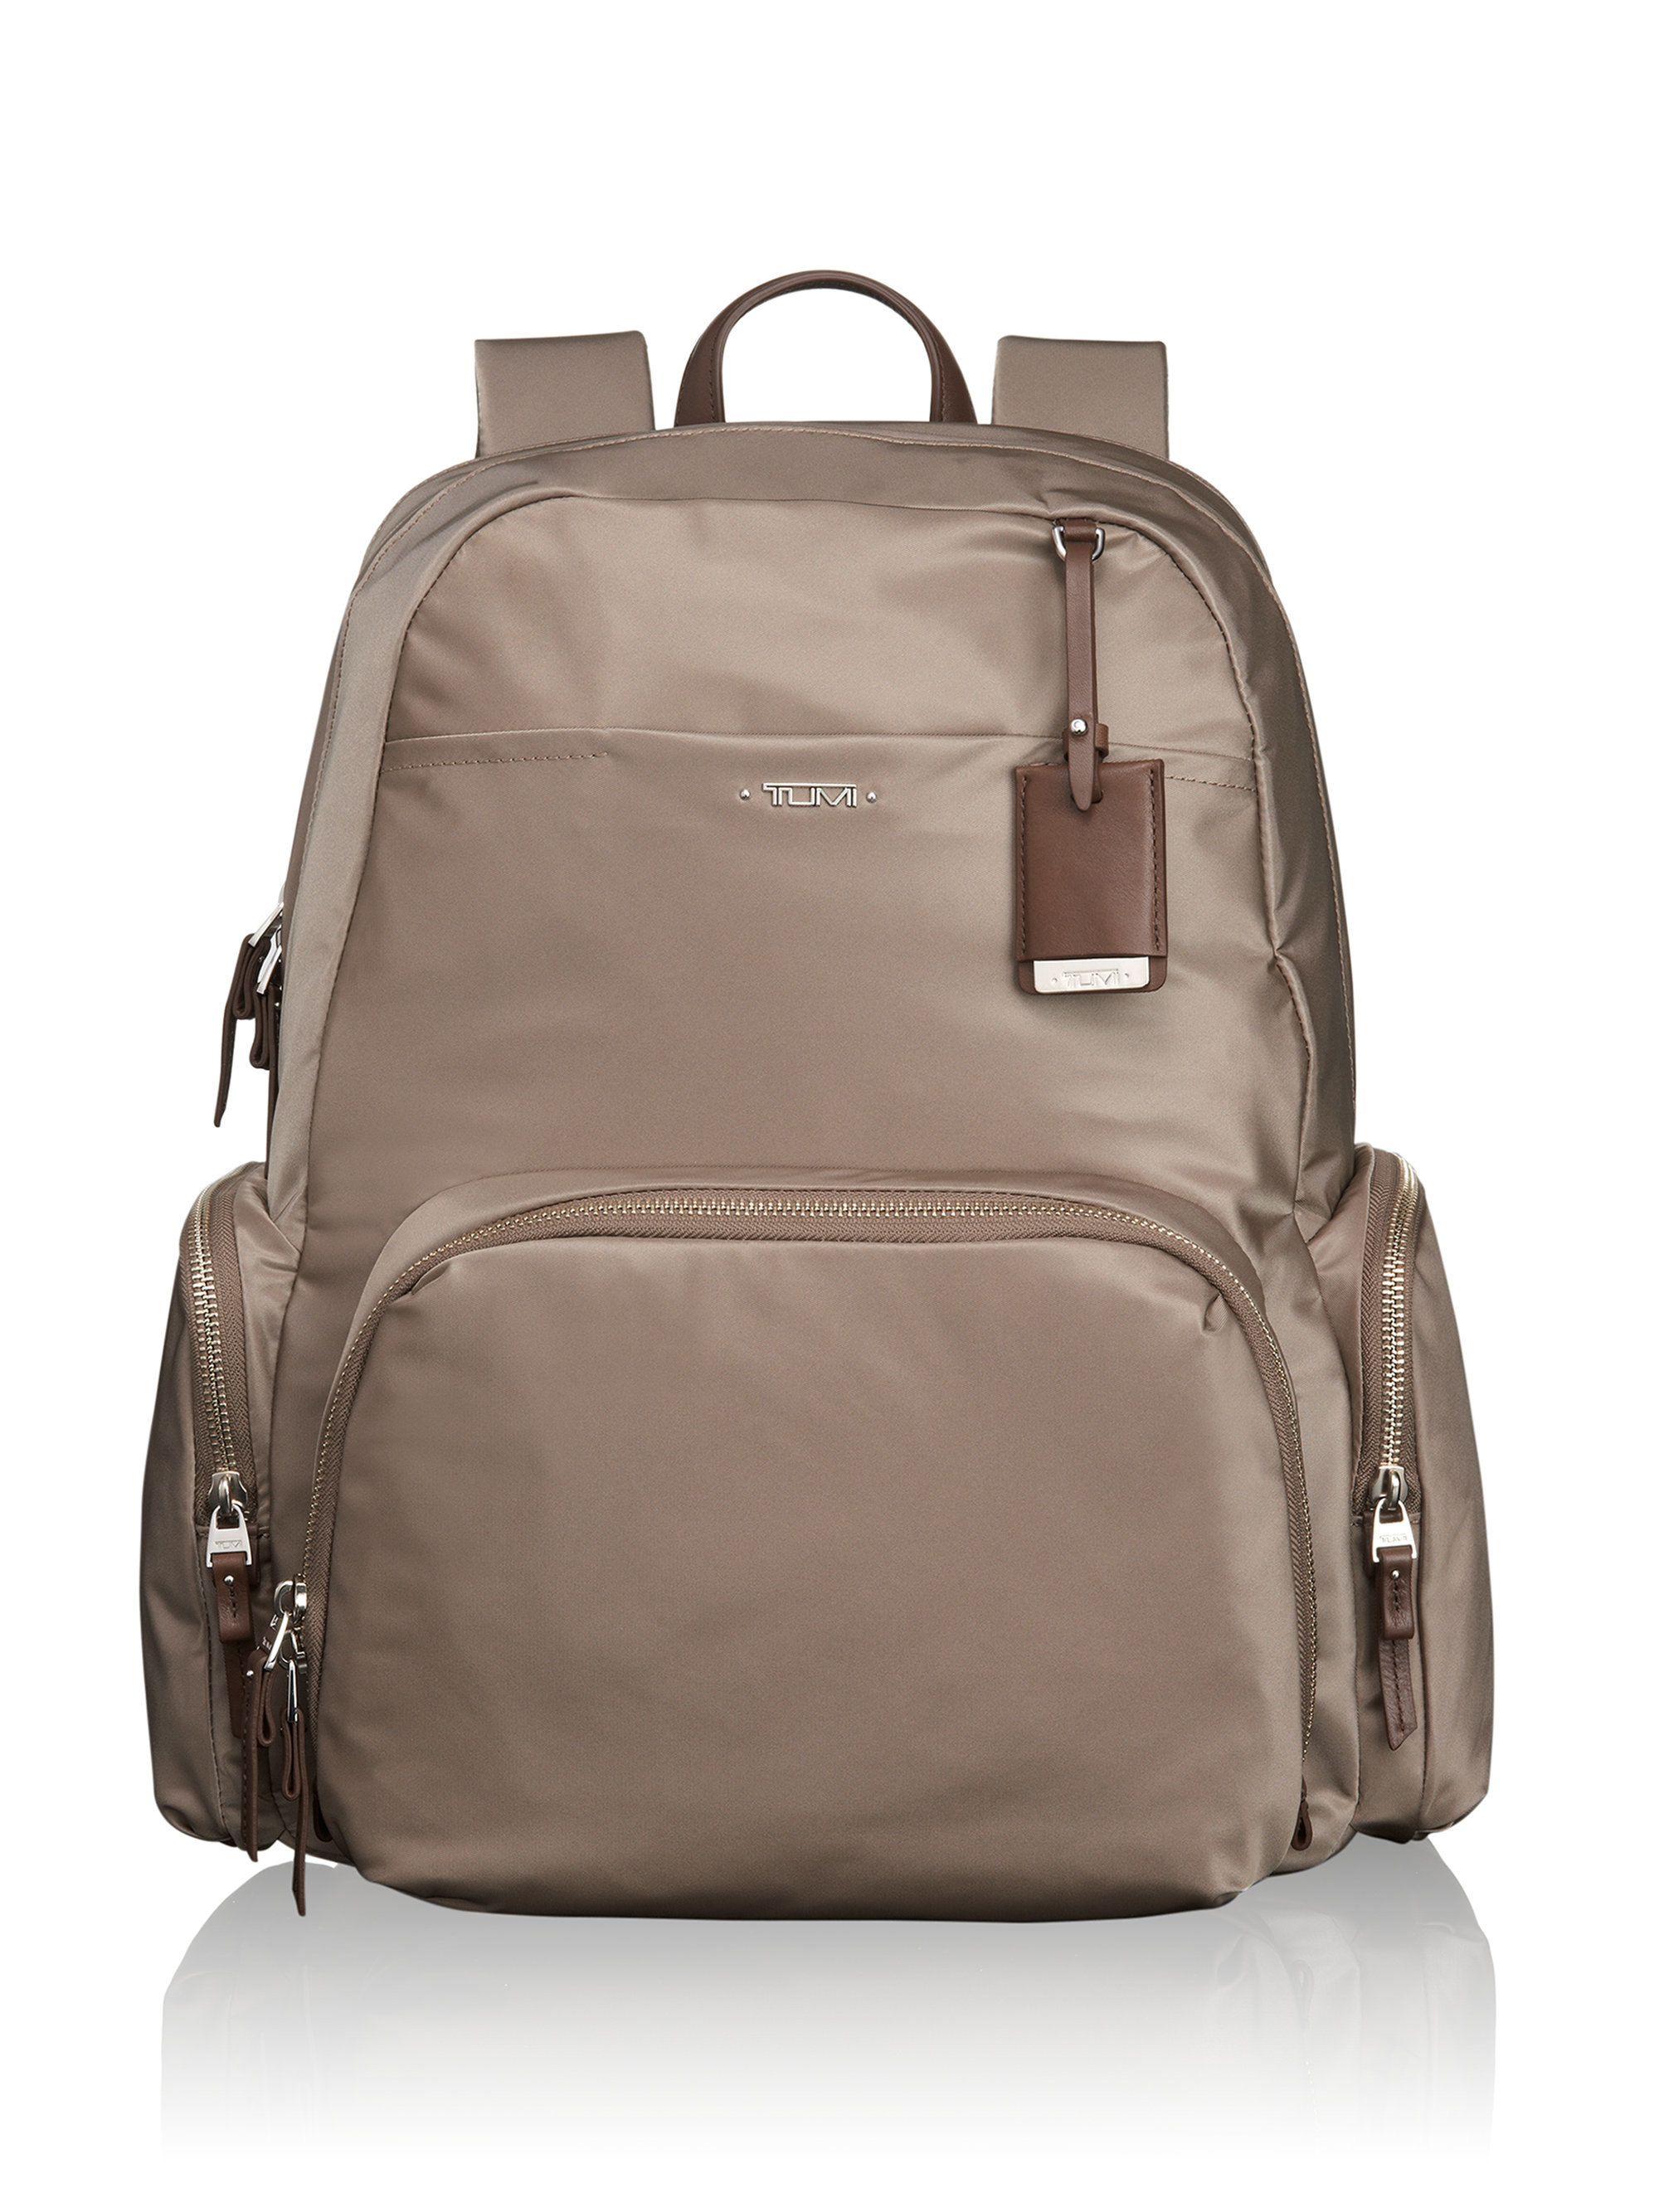 Tumi Voyageur Calais Backpack In Brown For Men Lyst